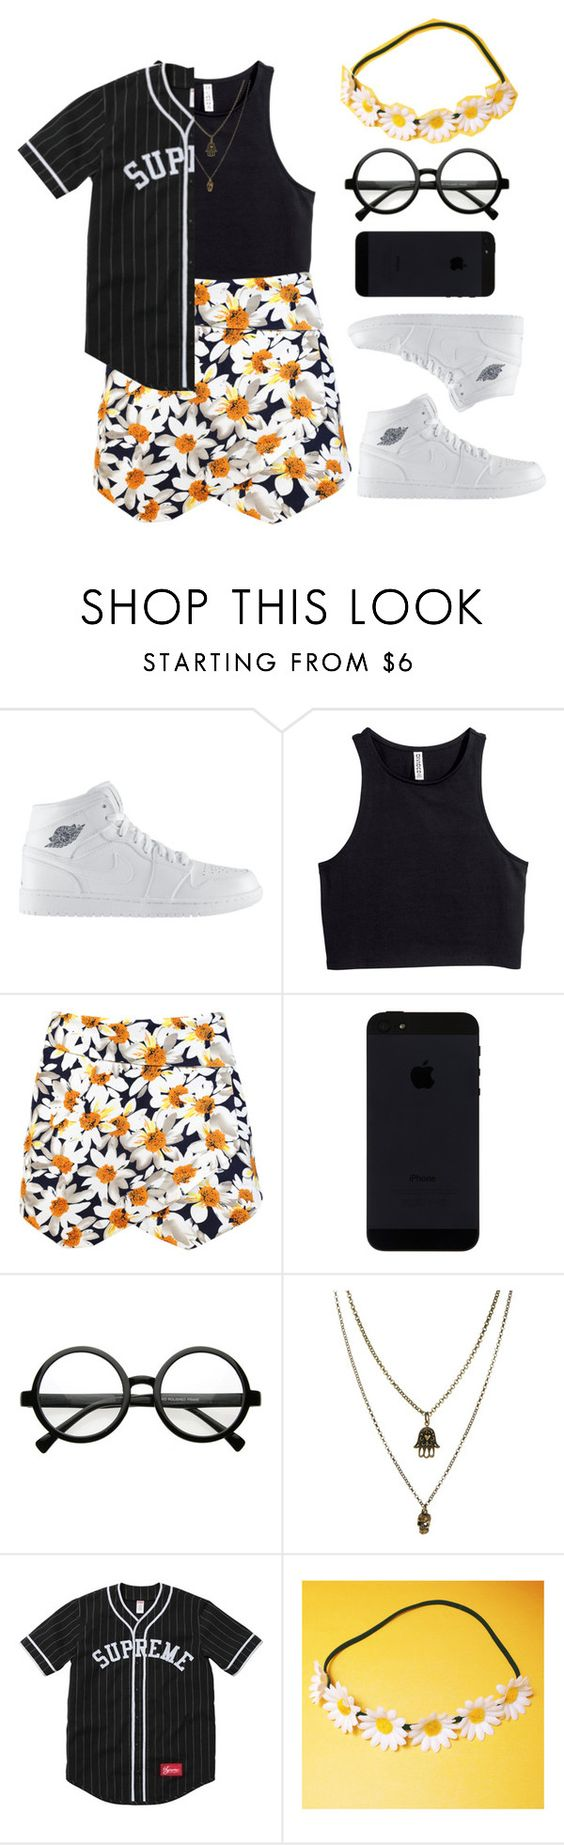 """""""Flower power"""" by idcmyaa ❤ liked on Polyvore featuring NIKE, H&M, Retrò and Jamie Jewellery"""